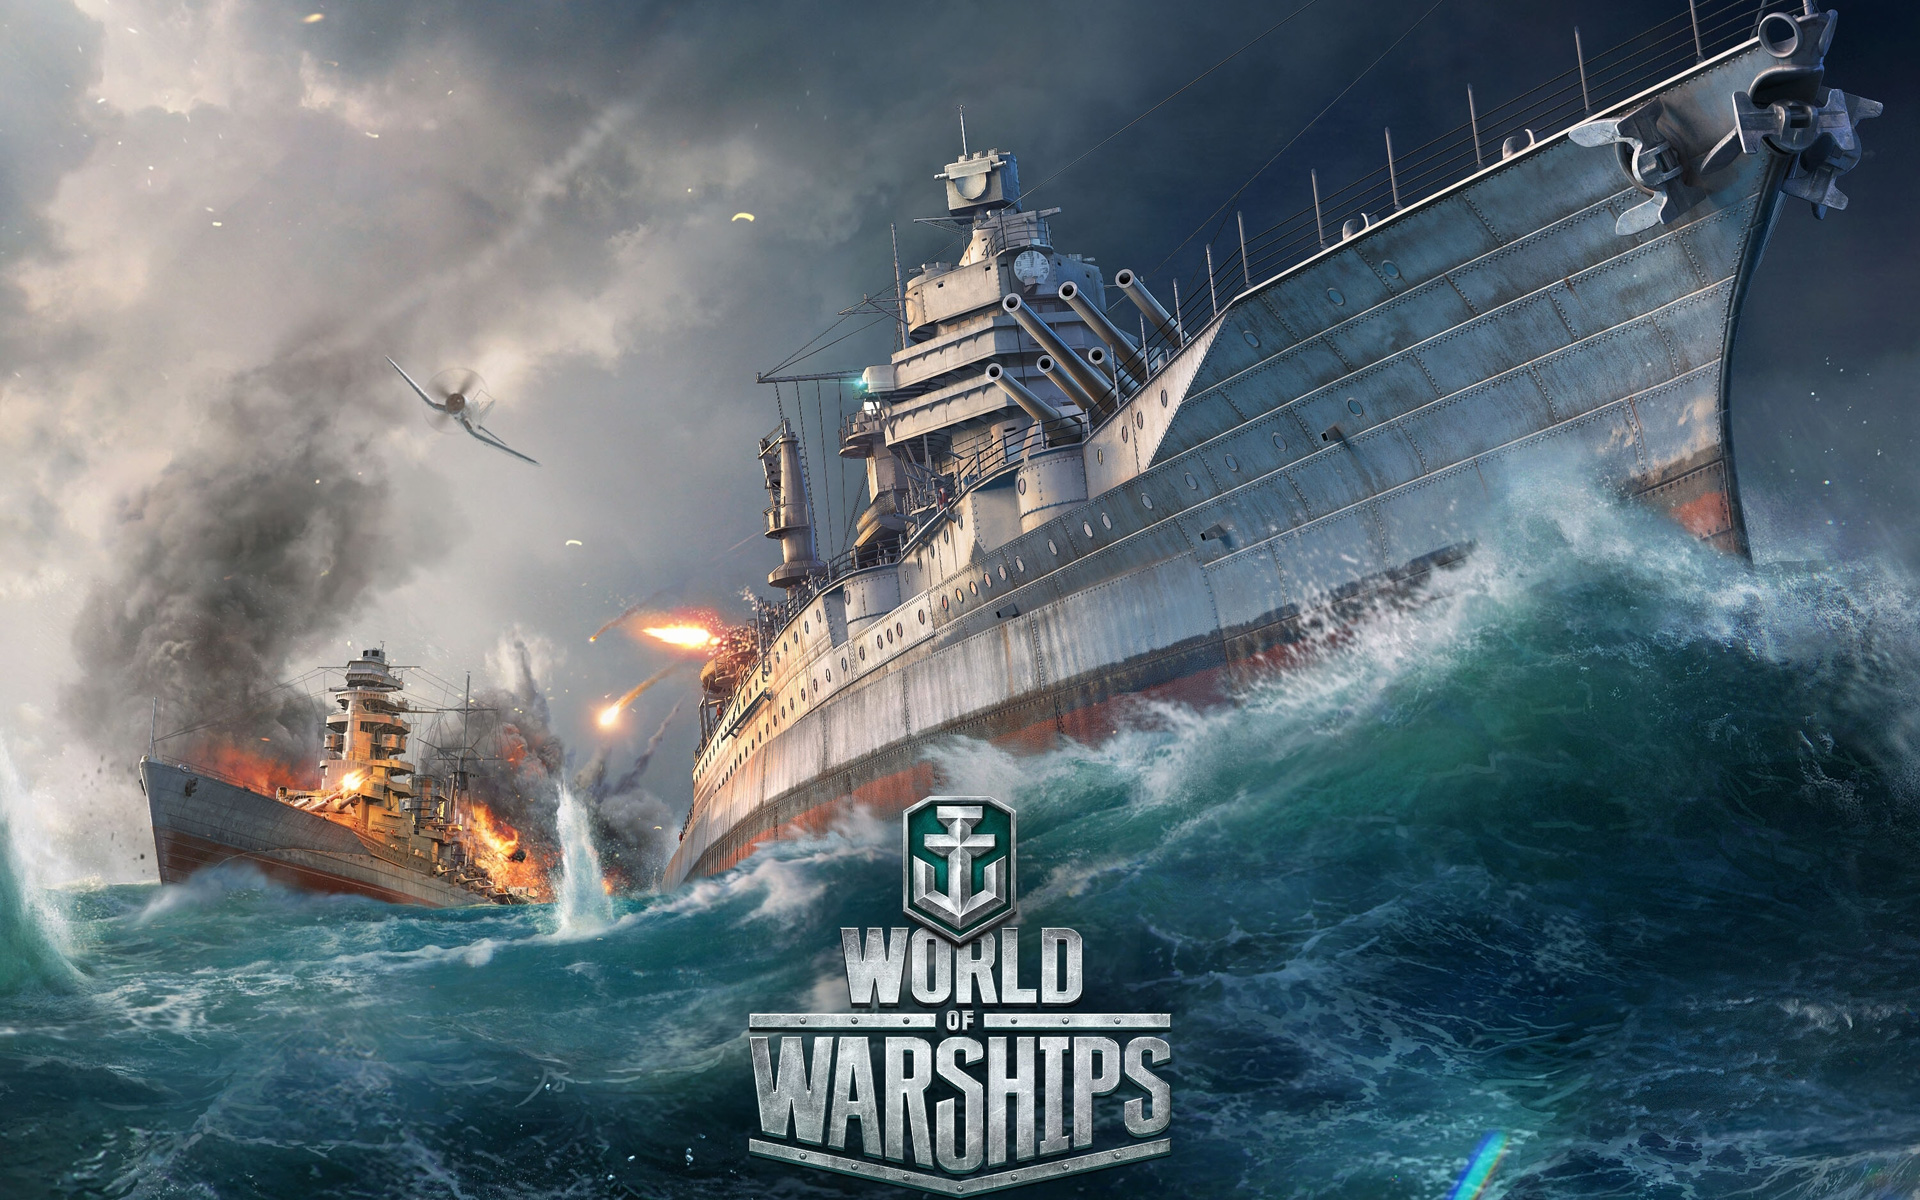 World of Warships Wallpaper in 1920x1200